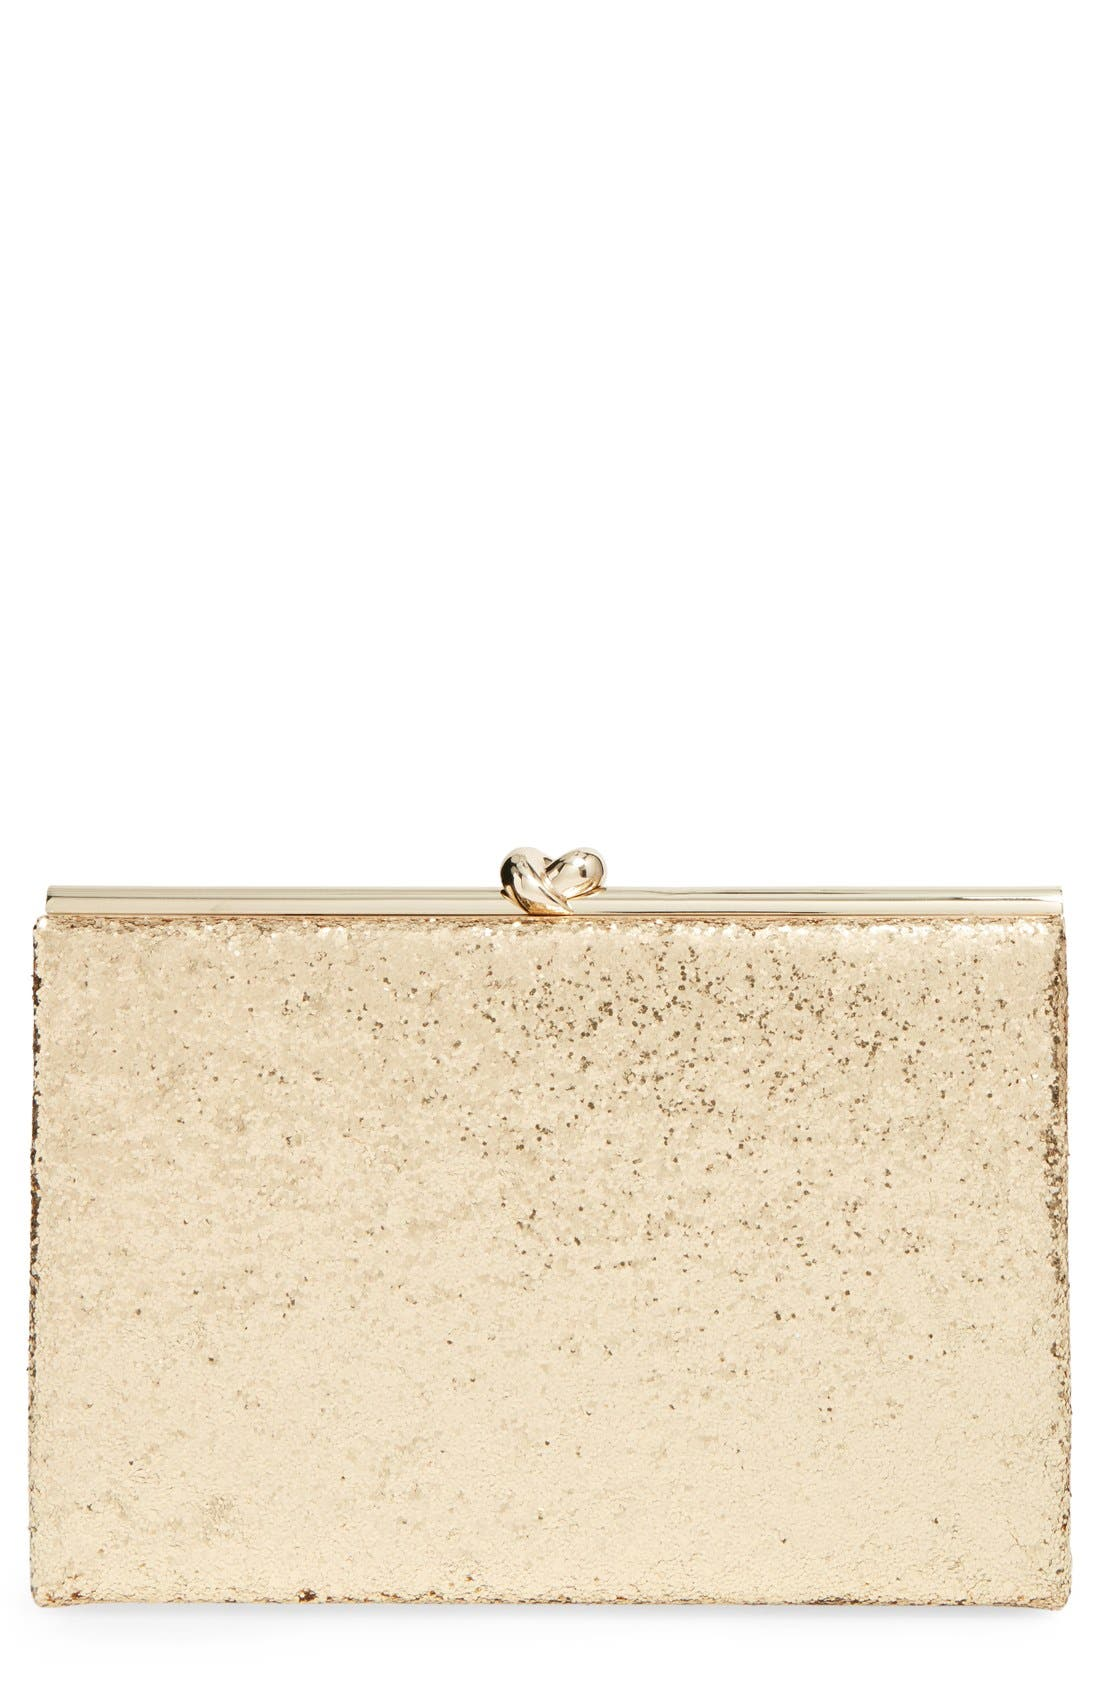 Alternate Image 1 Selected - kate spade new york 'wedding belles - gold knot' glitter box clutch